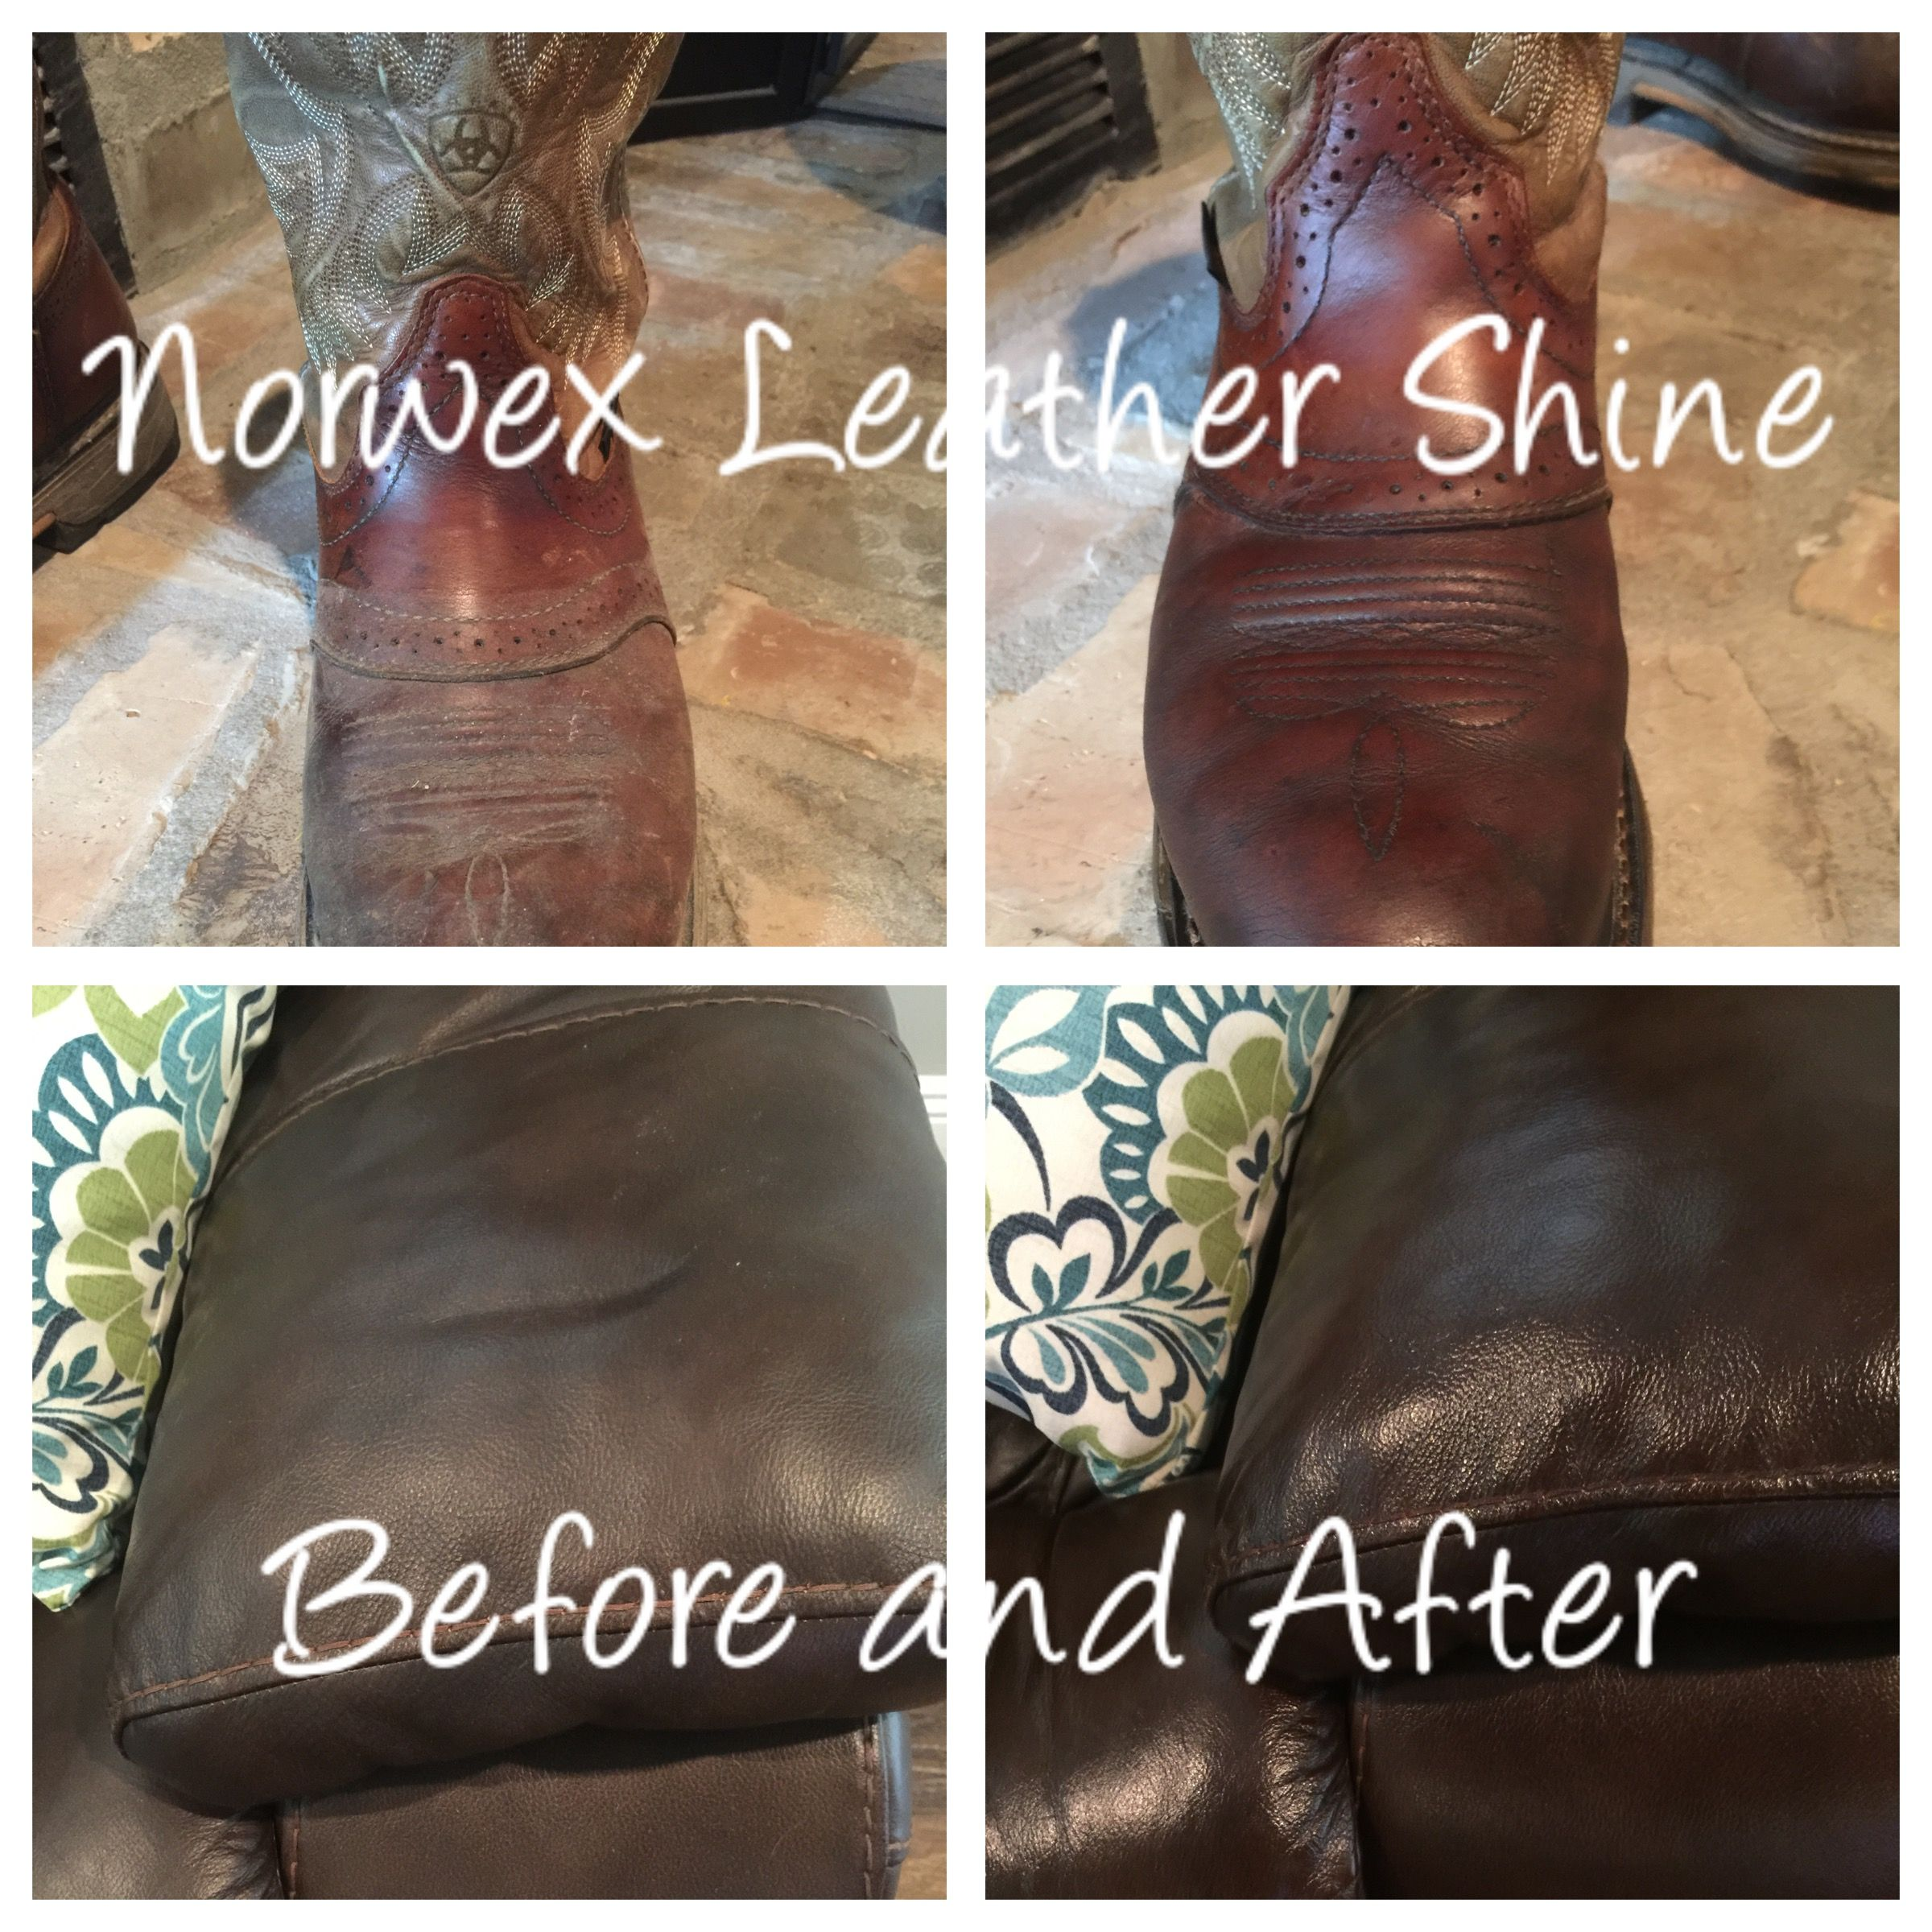 Norwex Leather Shine! Did a great job on the couch and